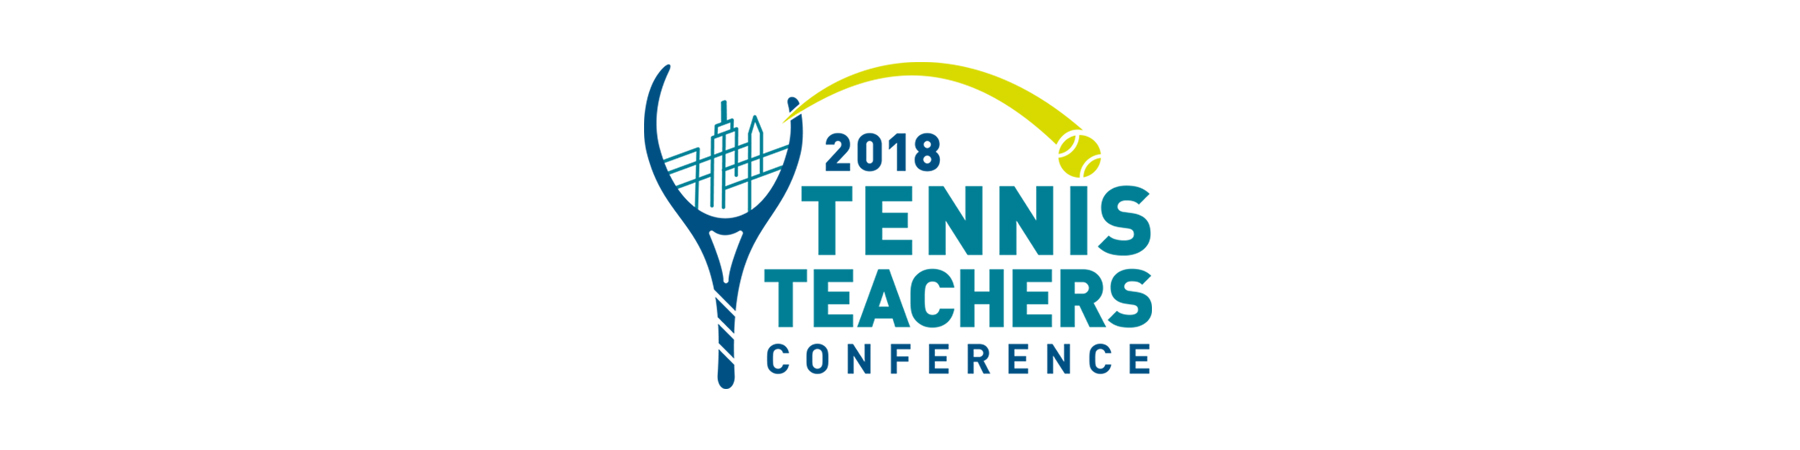 2018 Tennis Teachers Conference